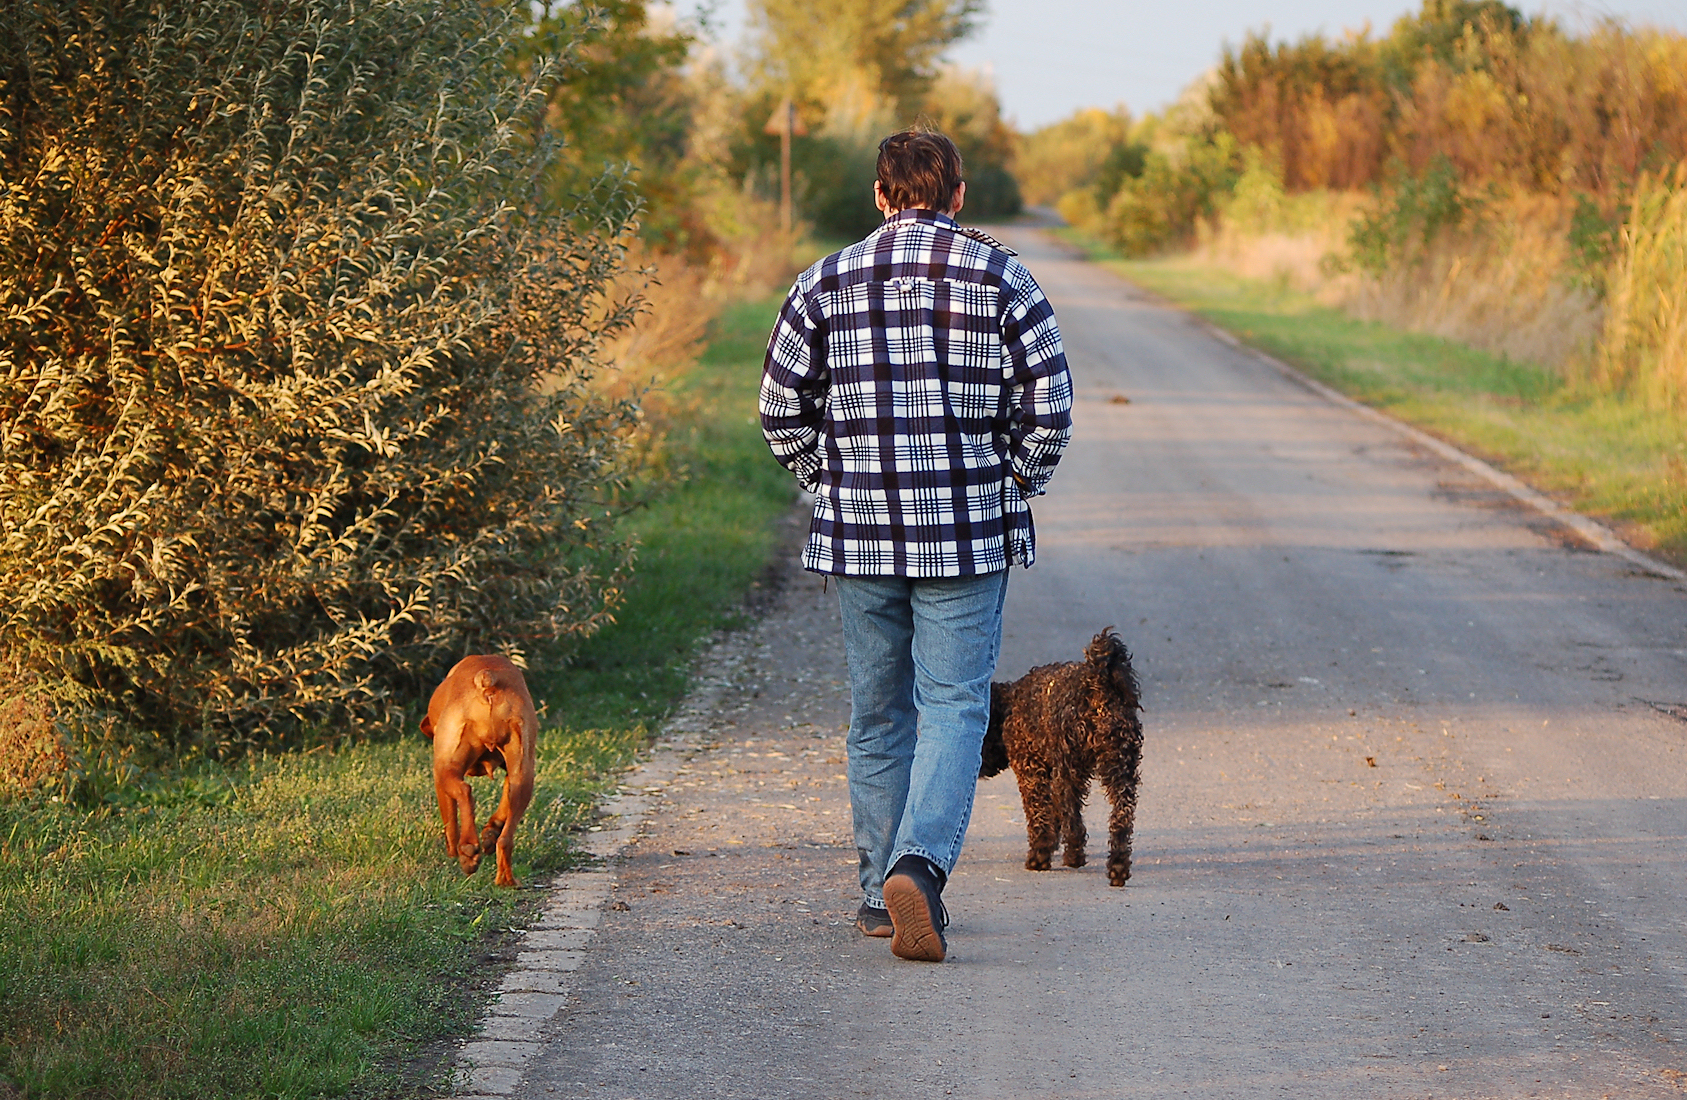 How Much Money Can You Get From Dog Walking